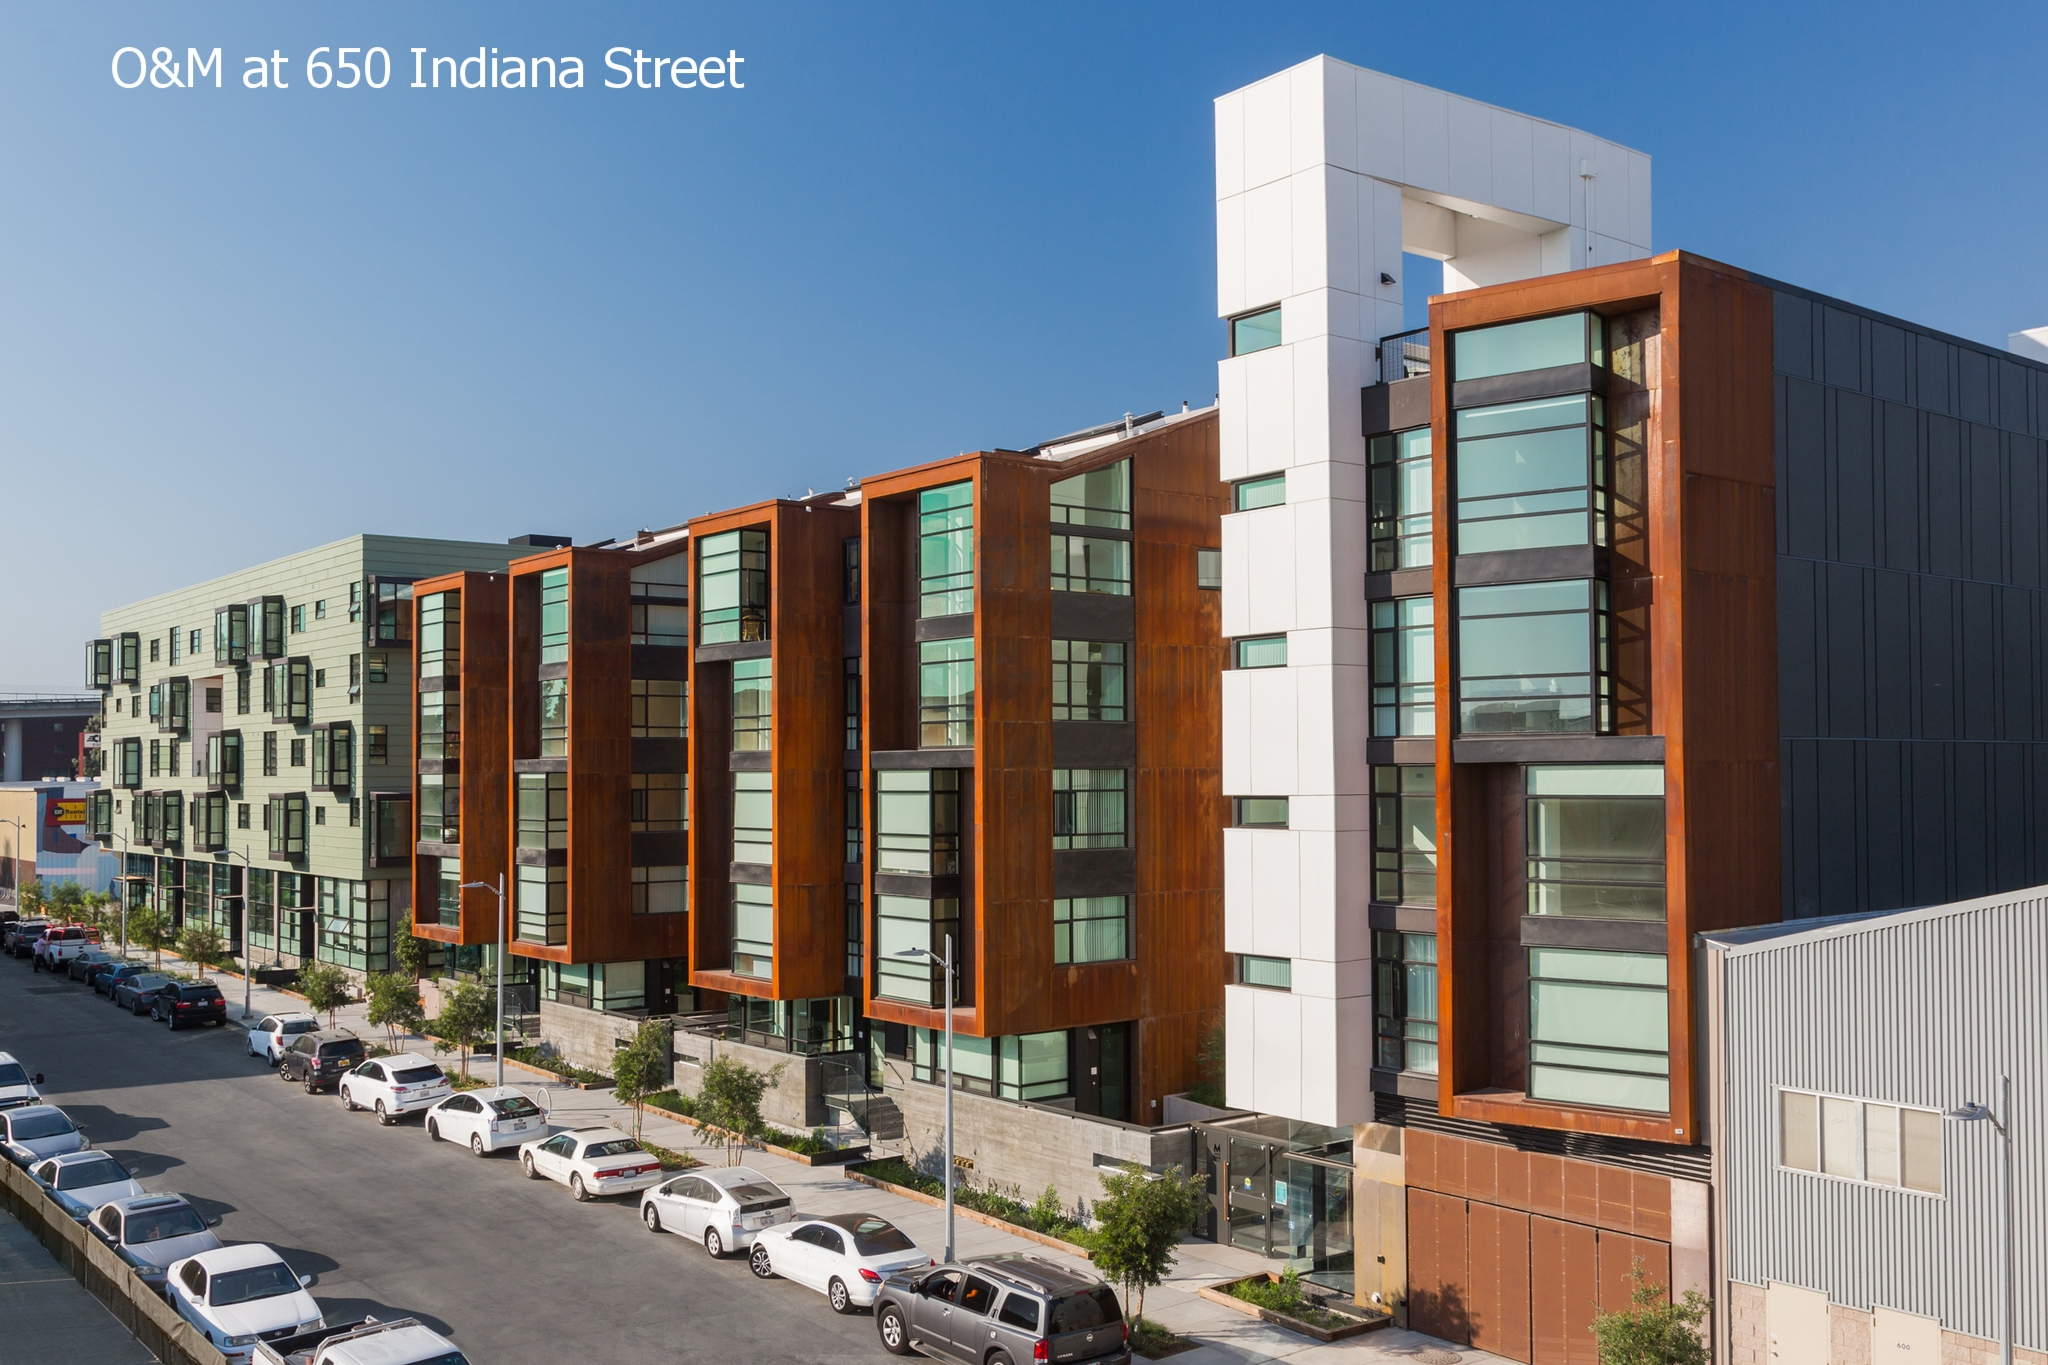 Indiana Street Building M - Day.jpg